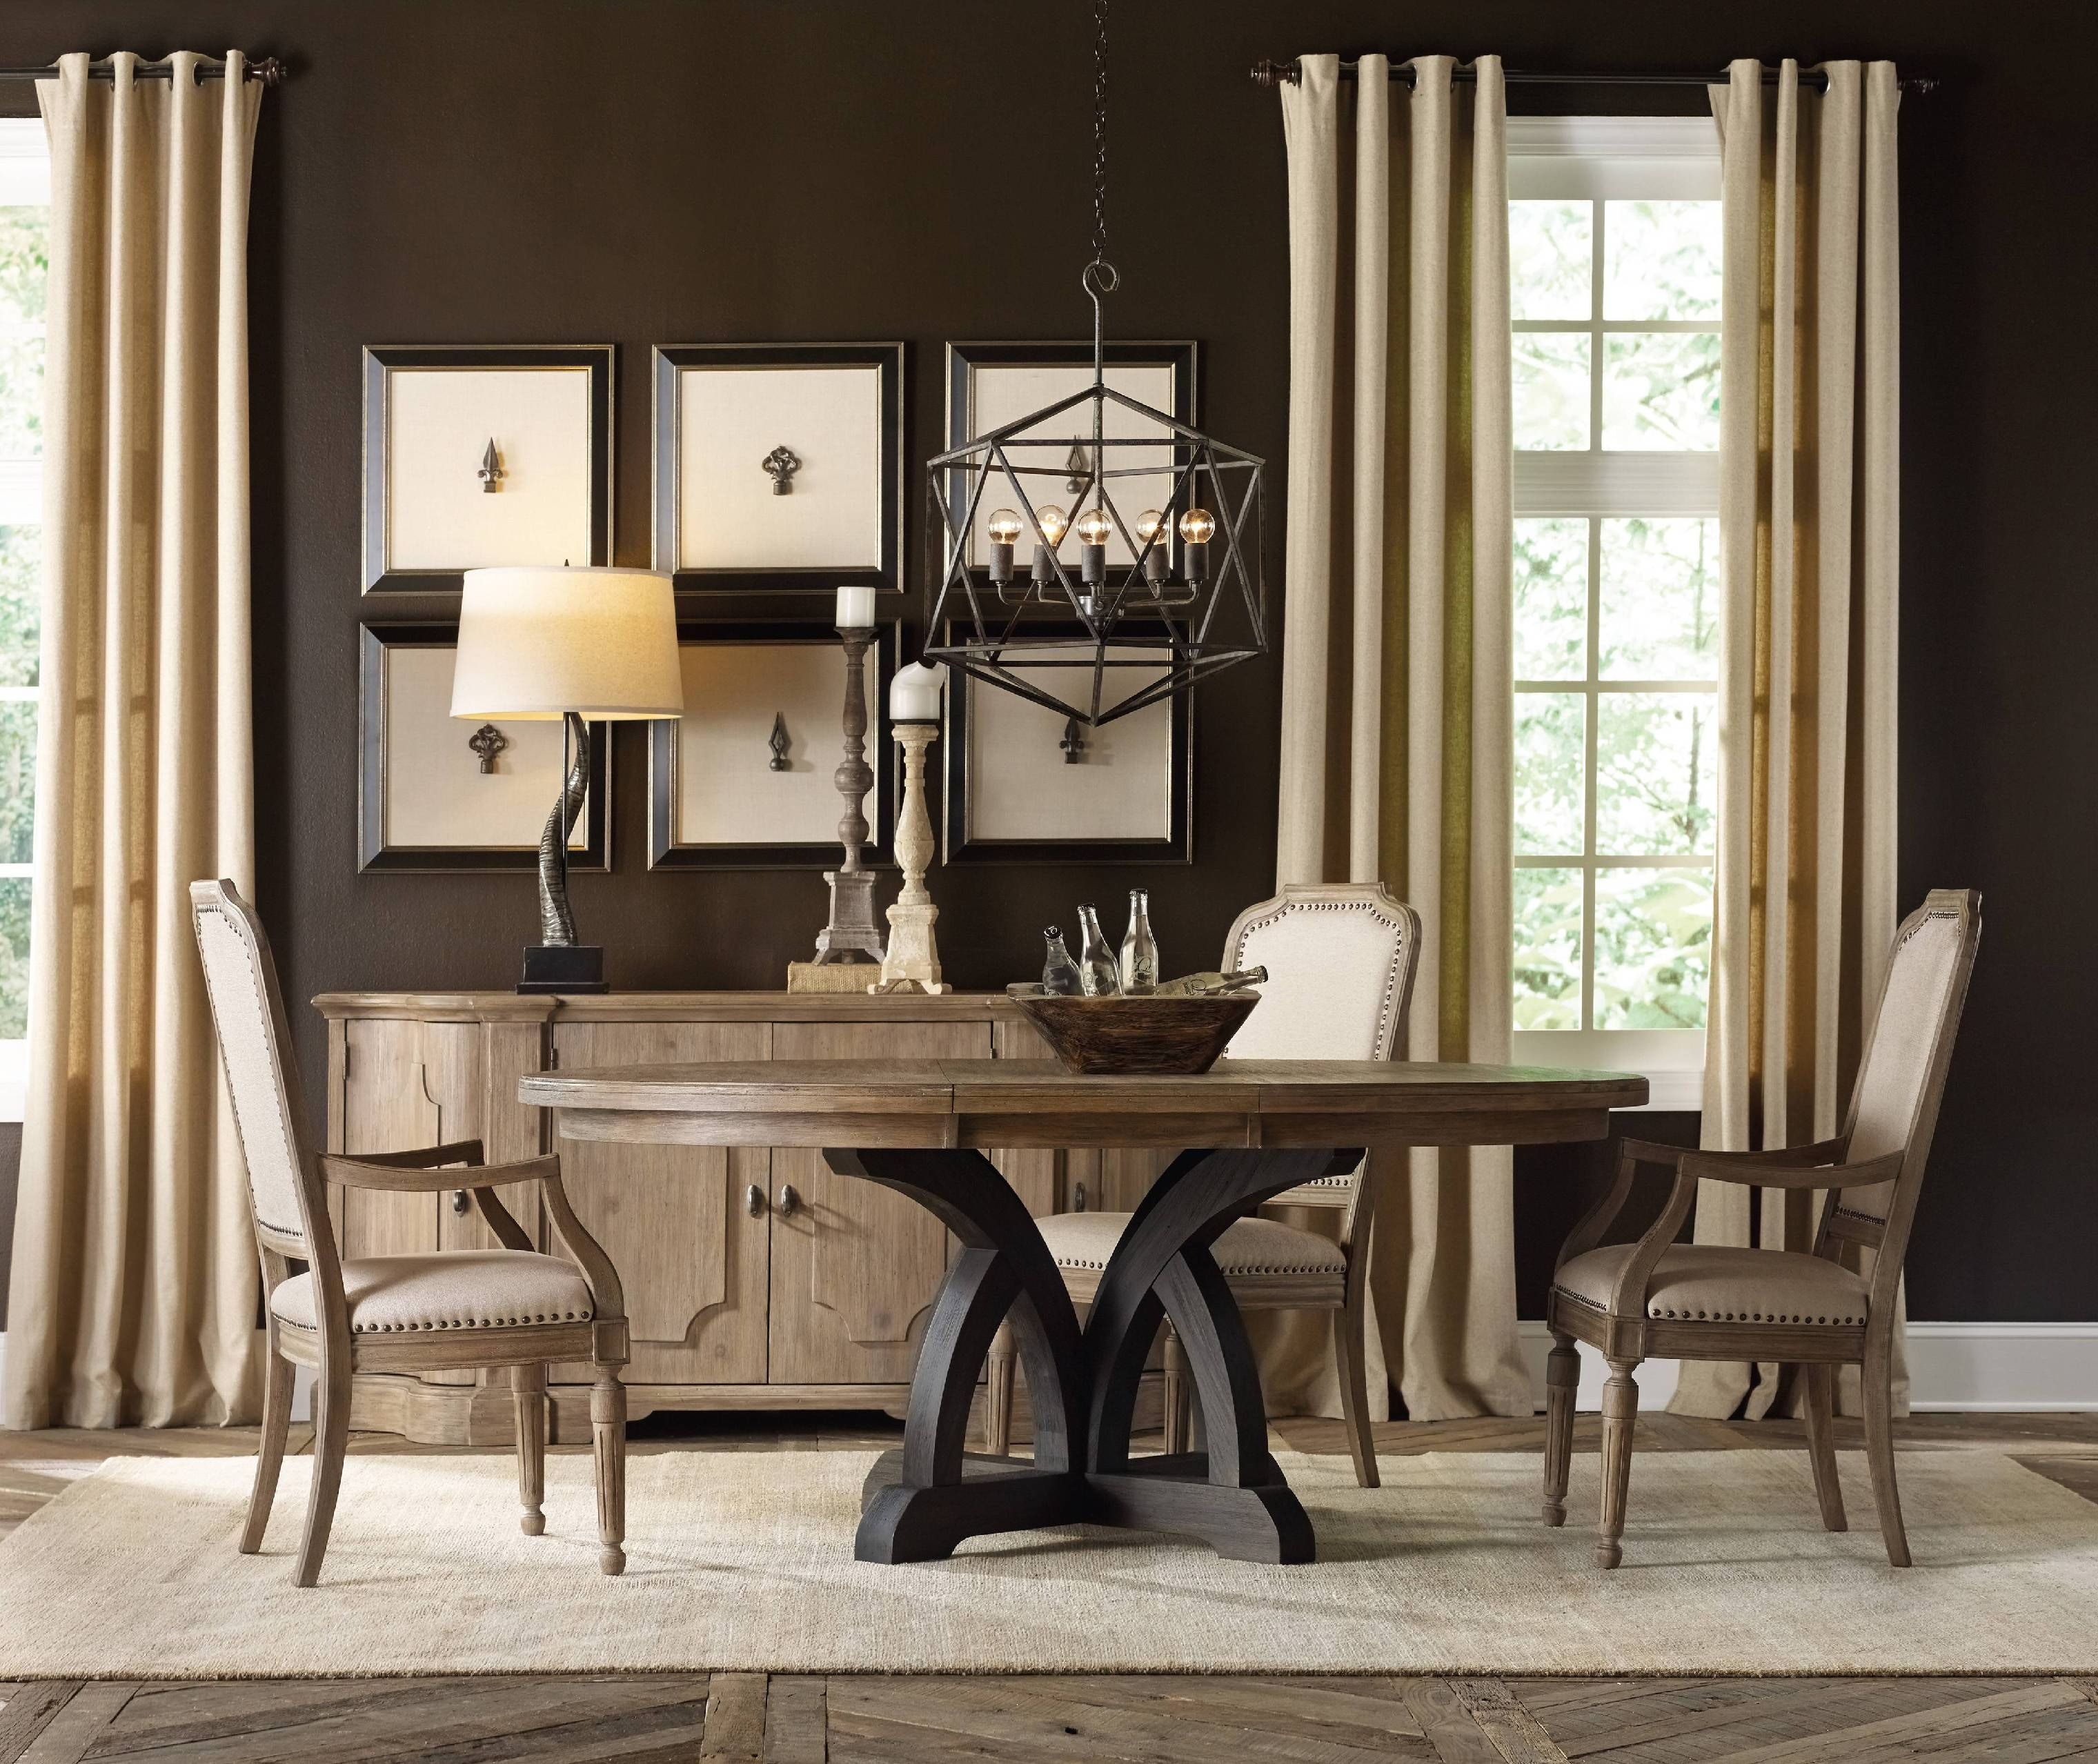 Hooker Furniture Corsica Dark Round Dining Table (Dark Base/Light Top) 5280